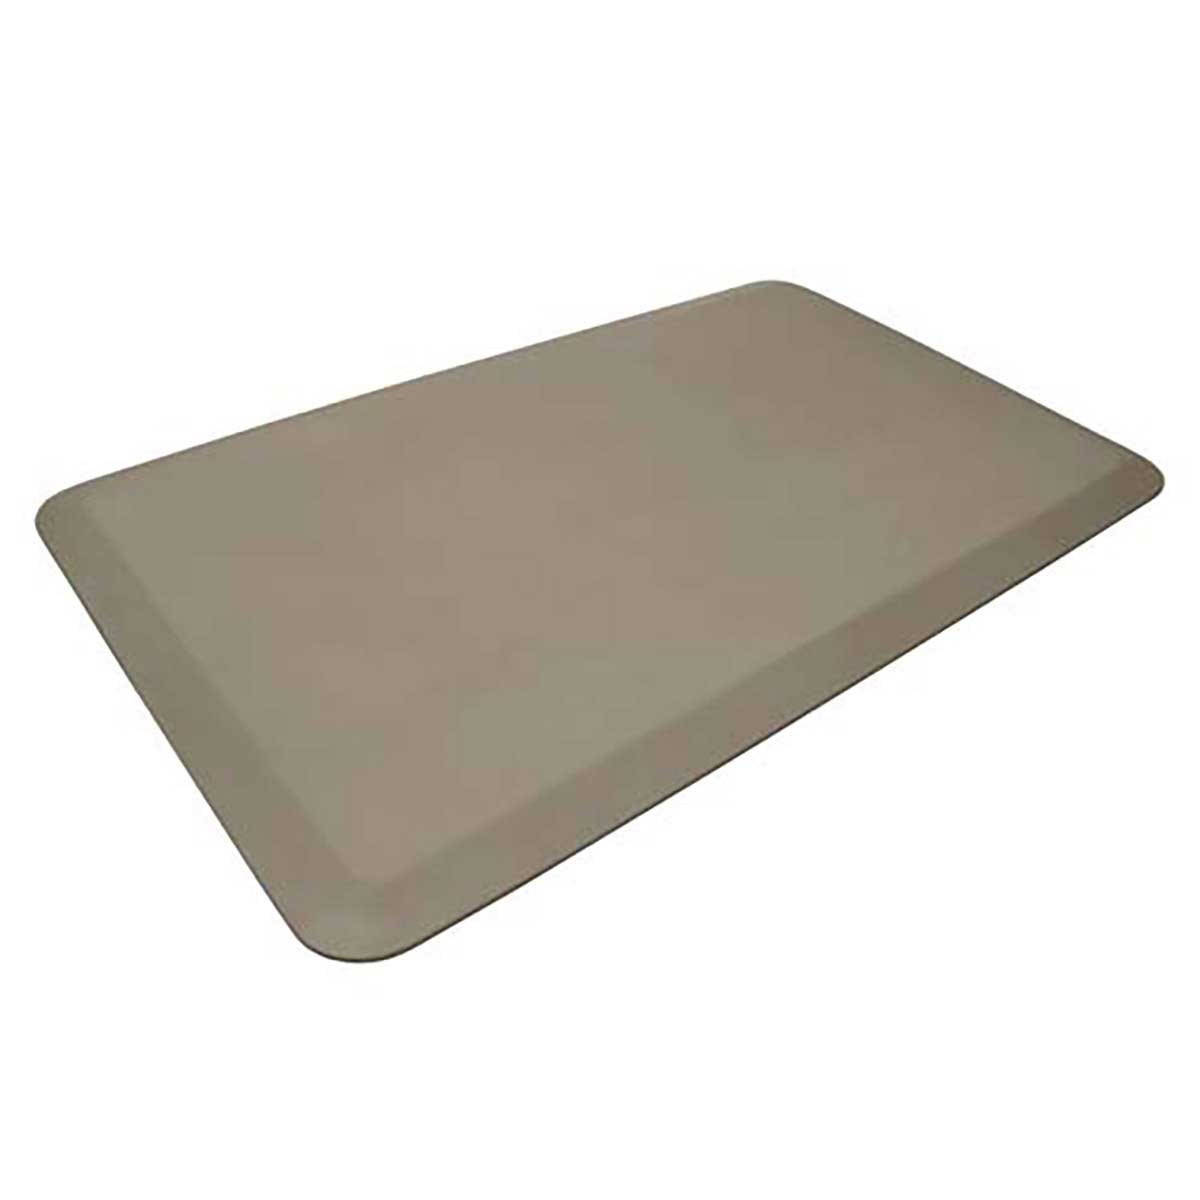 Taupe Newlife Eco-Pro Anti-Fatigue Mats - 20 inches by 32 inches